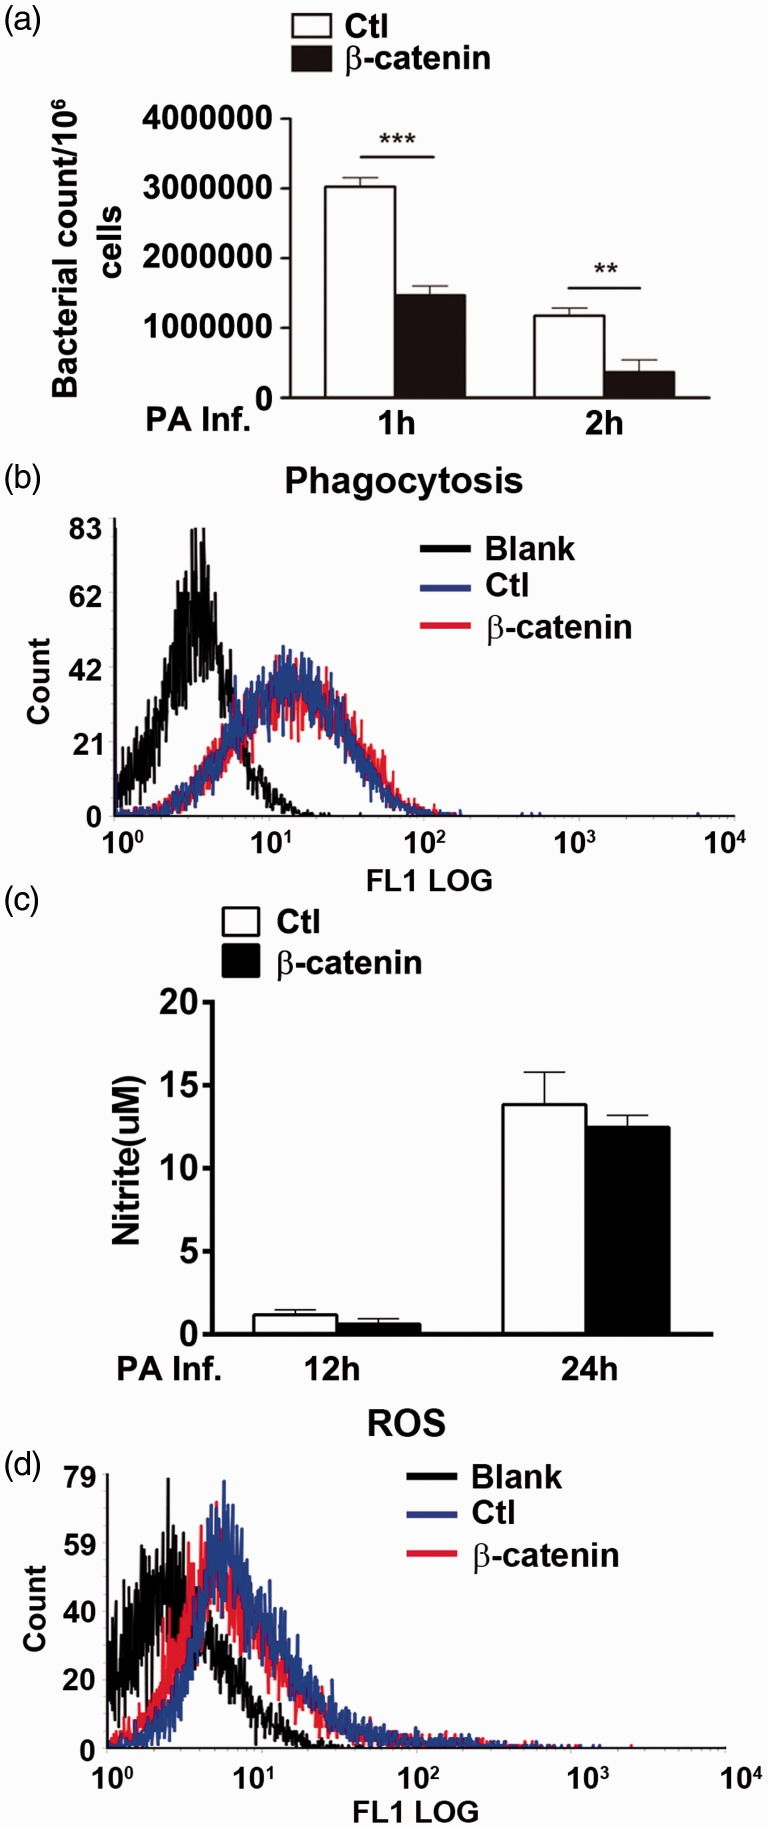 RAW264.7 cells transduced with β-catenin (encoded by catenin beta 1 [ CTNNB1 ] gene) or controls were infected with Pseudomonas aeruginosa : (a) Plate counts showed that bacterial killing was increased in cells overexpressing CTNNB1 versus controls at 1 h (*** P